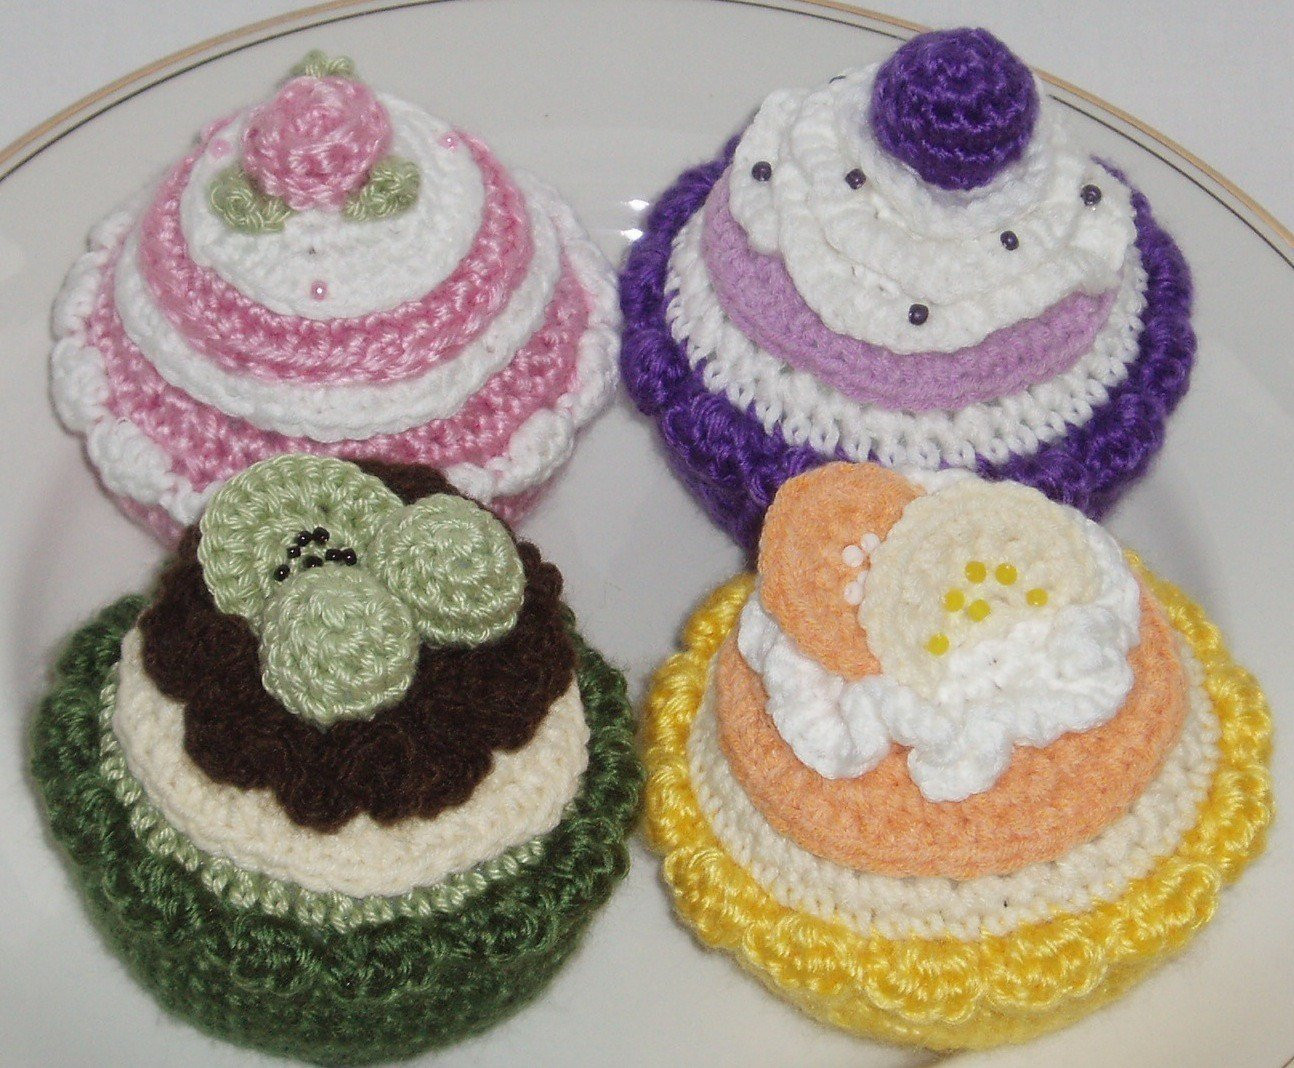 Luxury Crochet Pattern Instant Crochet Cakes and Tarts Crochet Cake Of Incredible 40 Ideas Crochet Cake